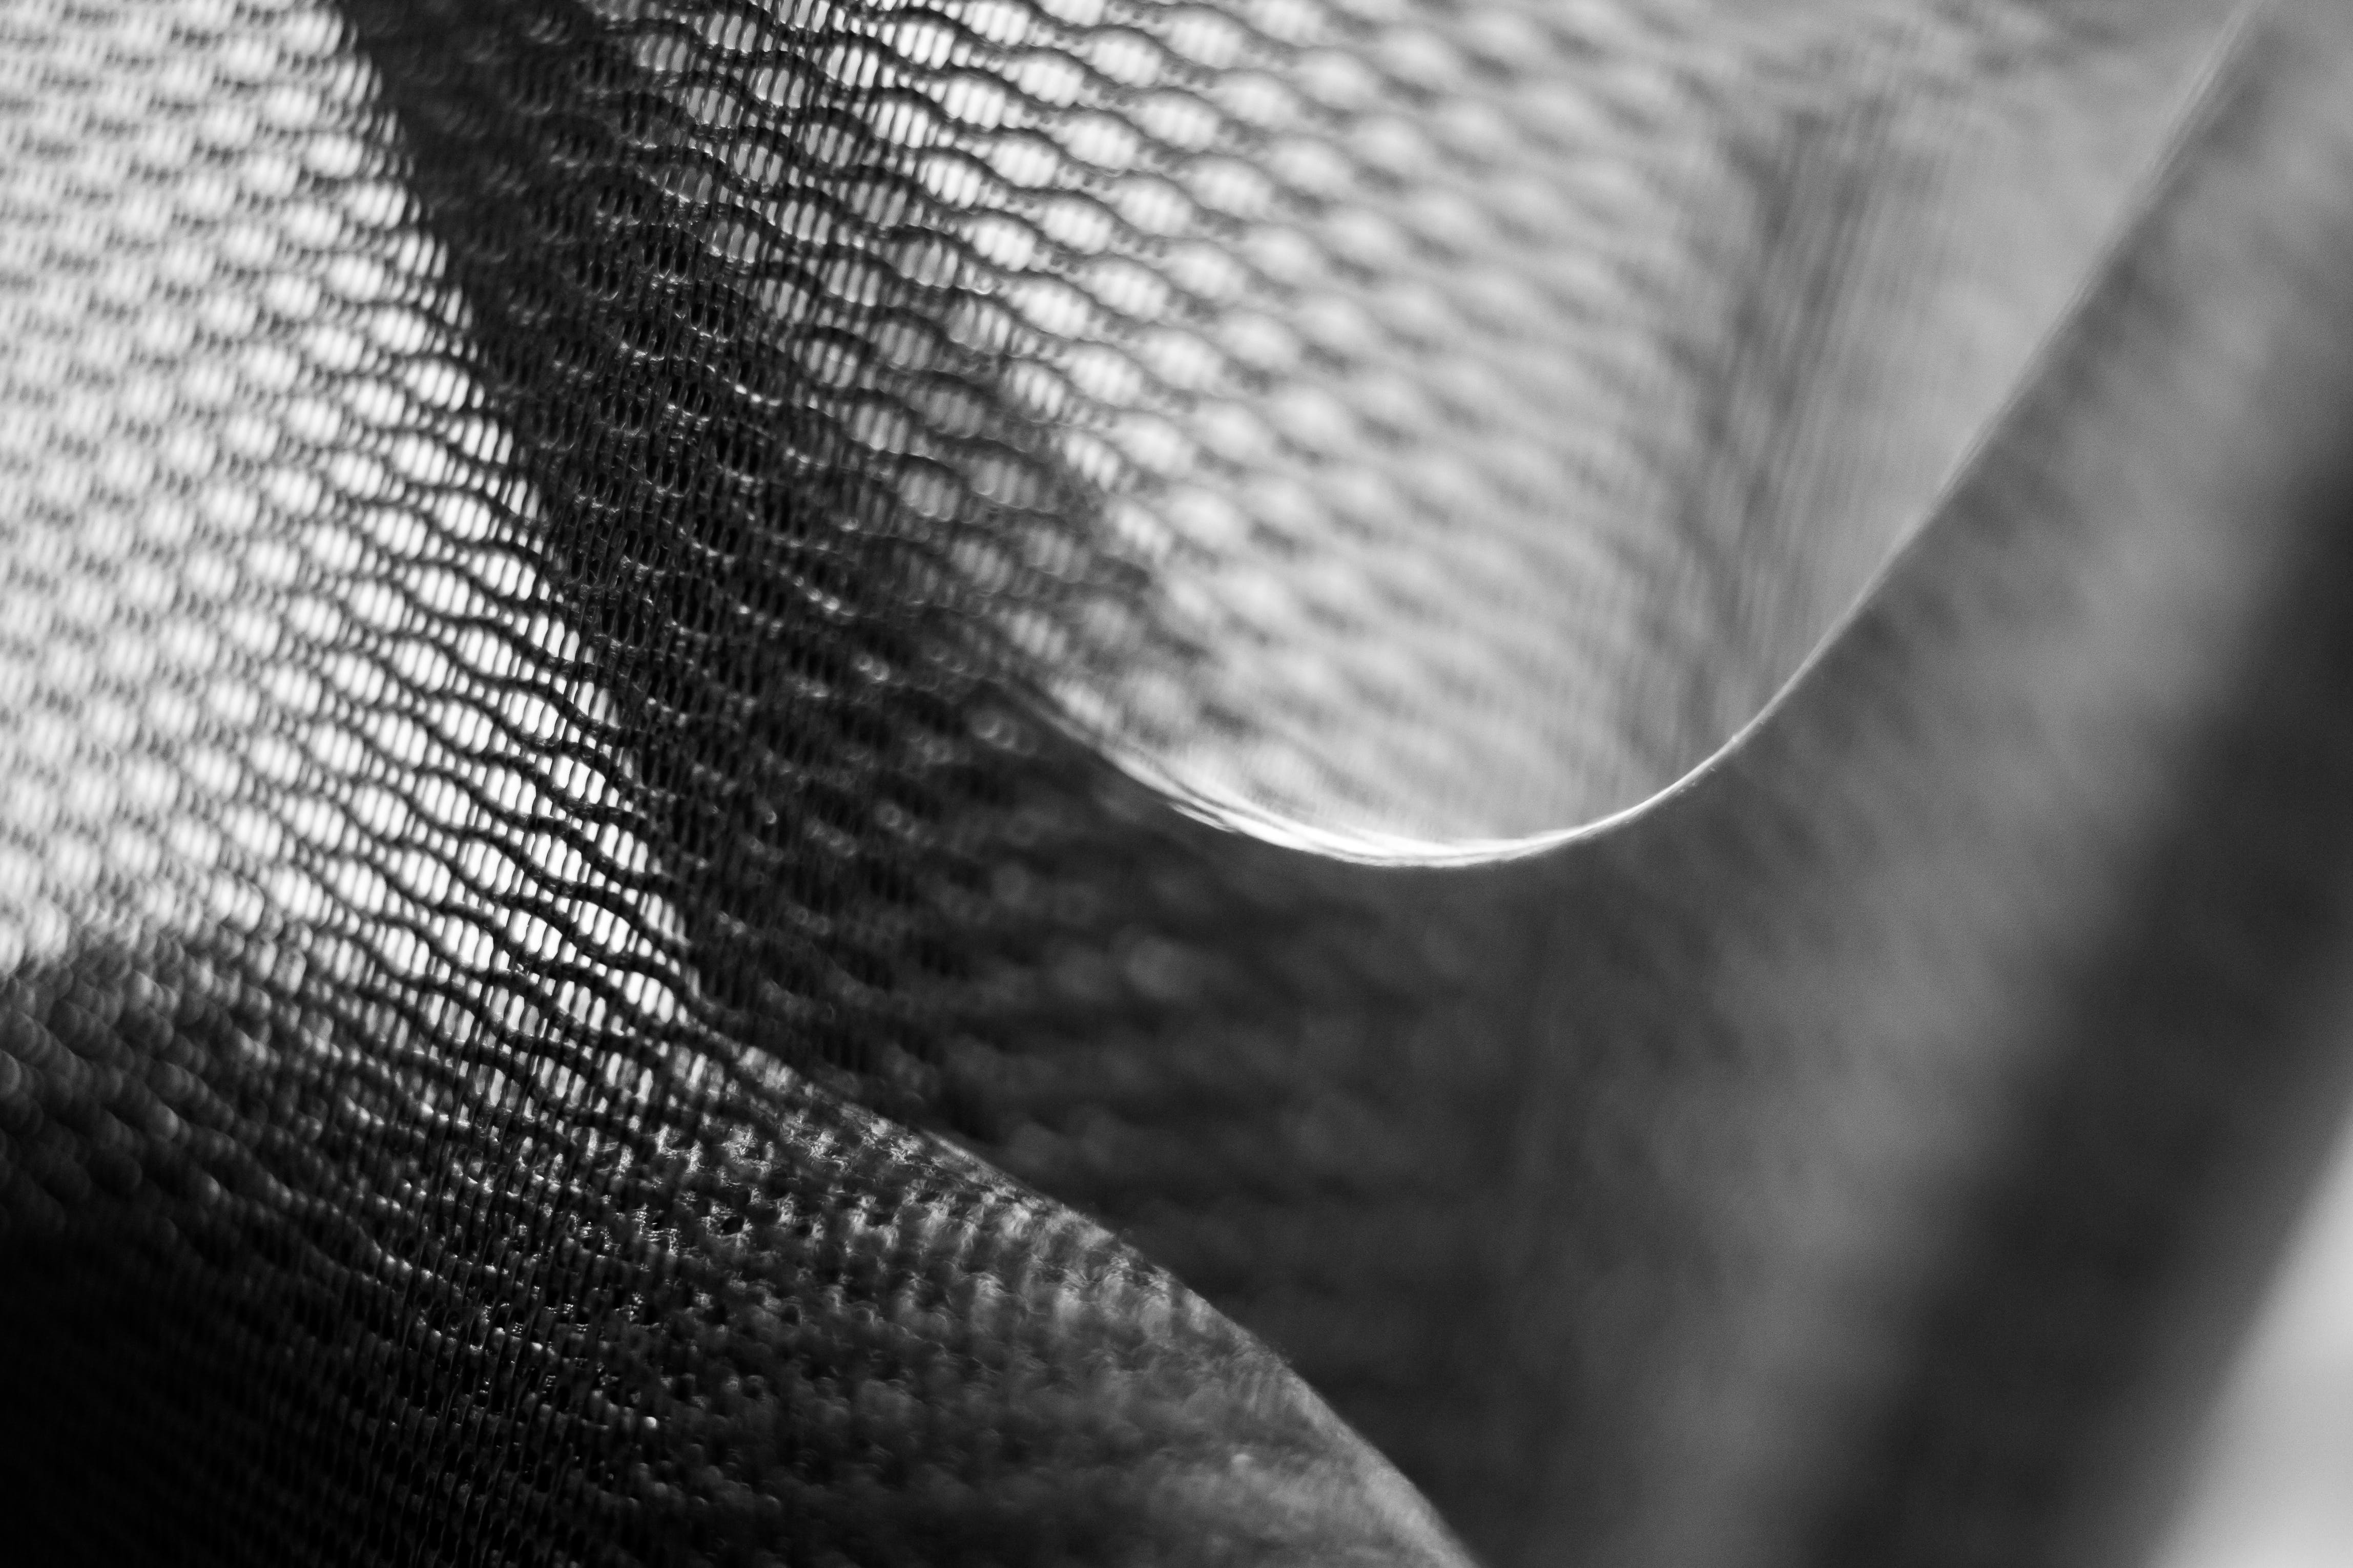 Close-Up Photo Of Net